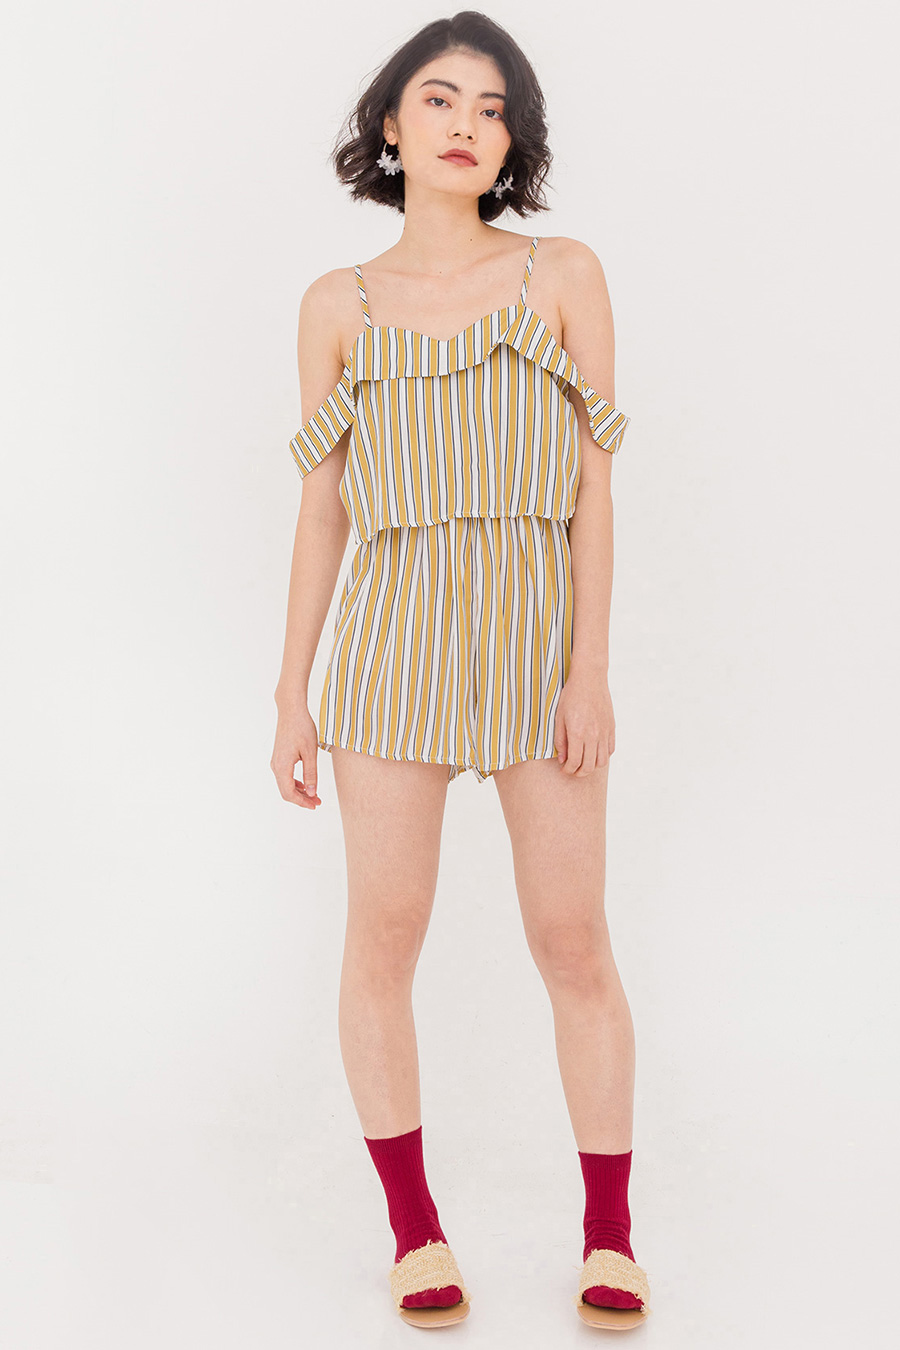 *SALE* CLYDE STRIPE PLAYSUIT - CANARY